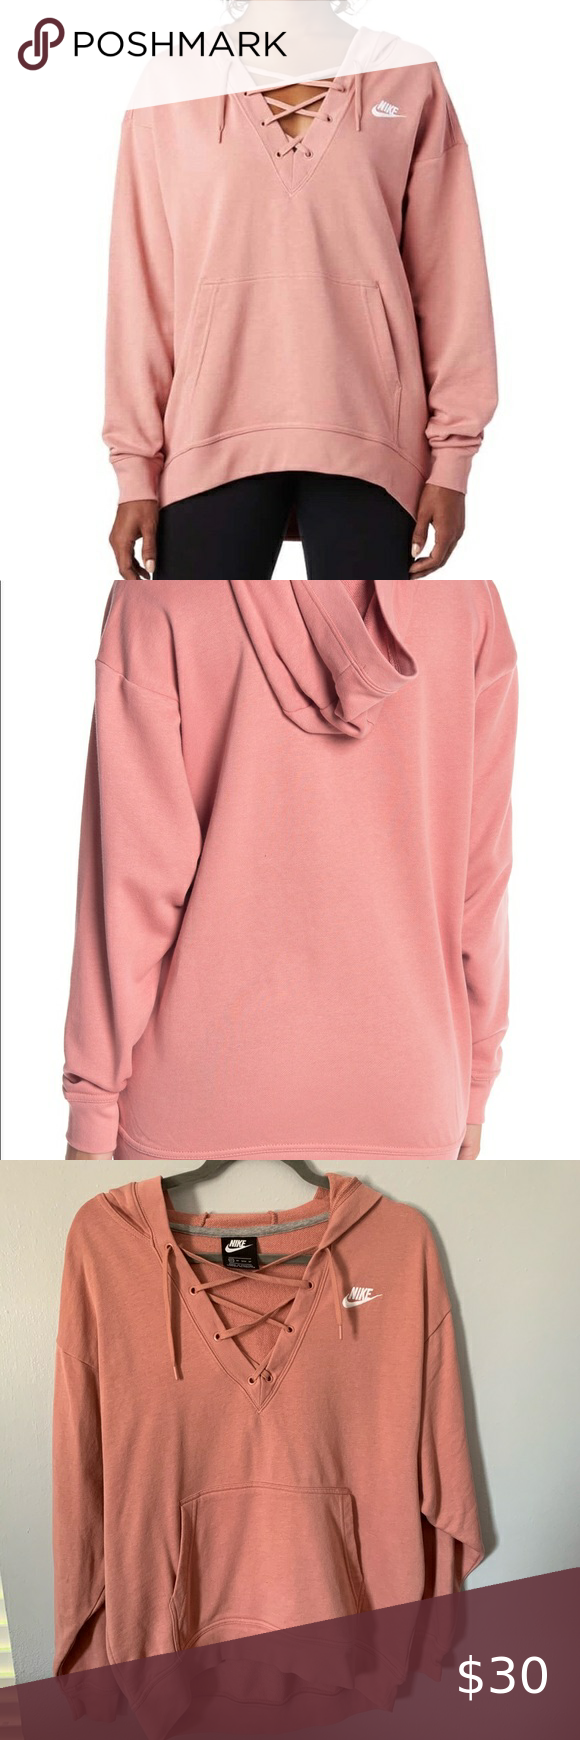 Blush Pink Nike Lace Up Hoodie Clothes Design Hoodie Brands Pink Nikes [ 1740 x 580 Pixel ]